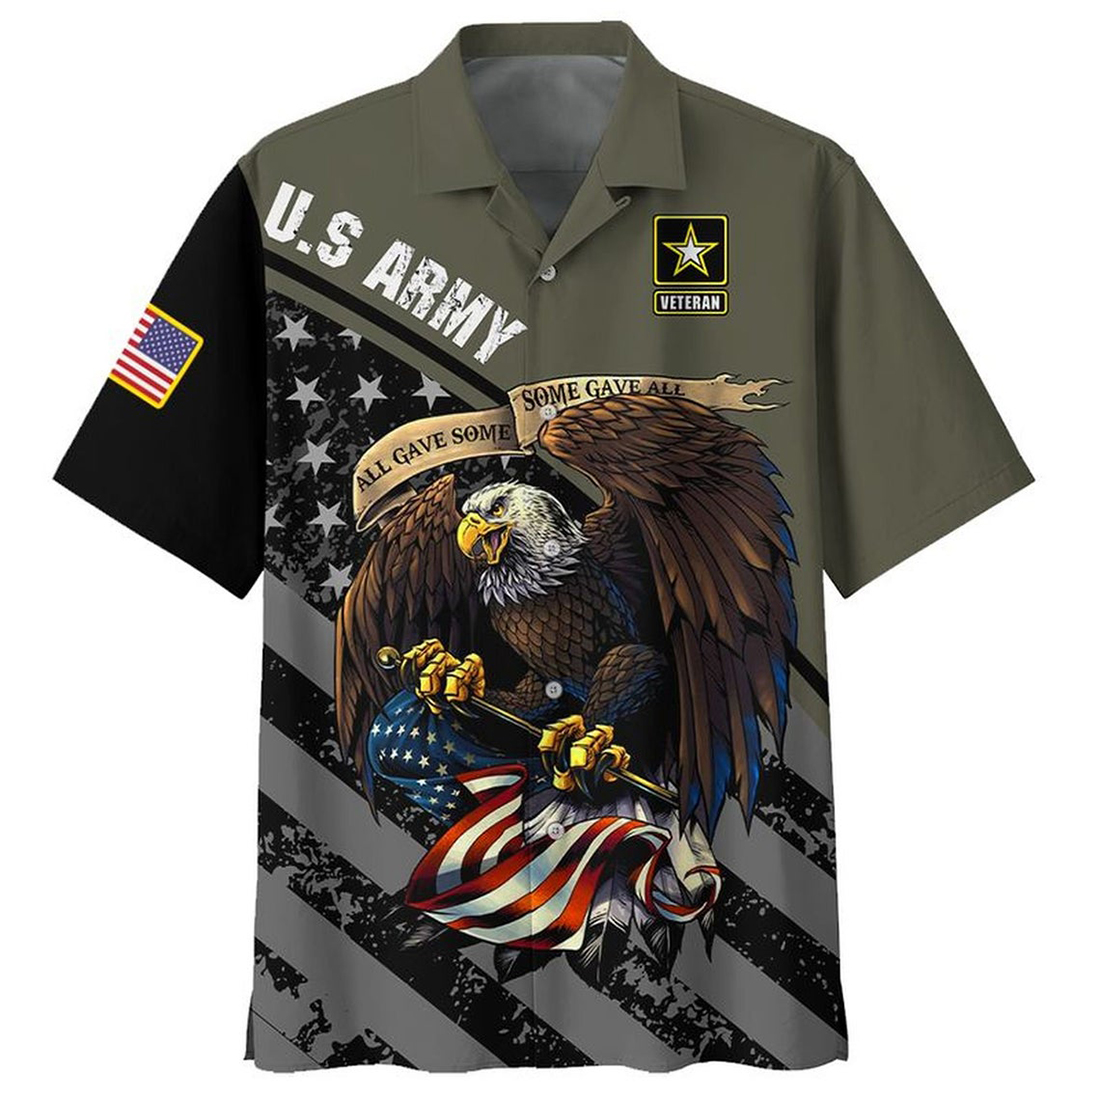 All gave some Some gave all US Army veteran hawaiian shirt